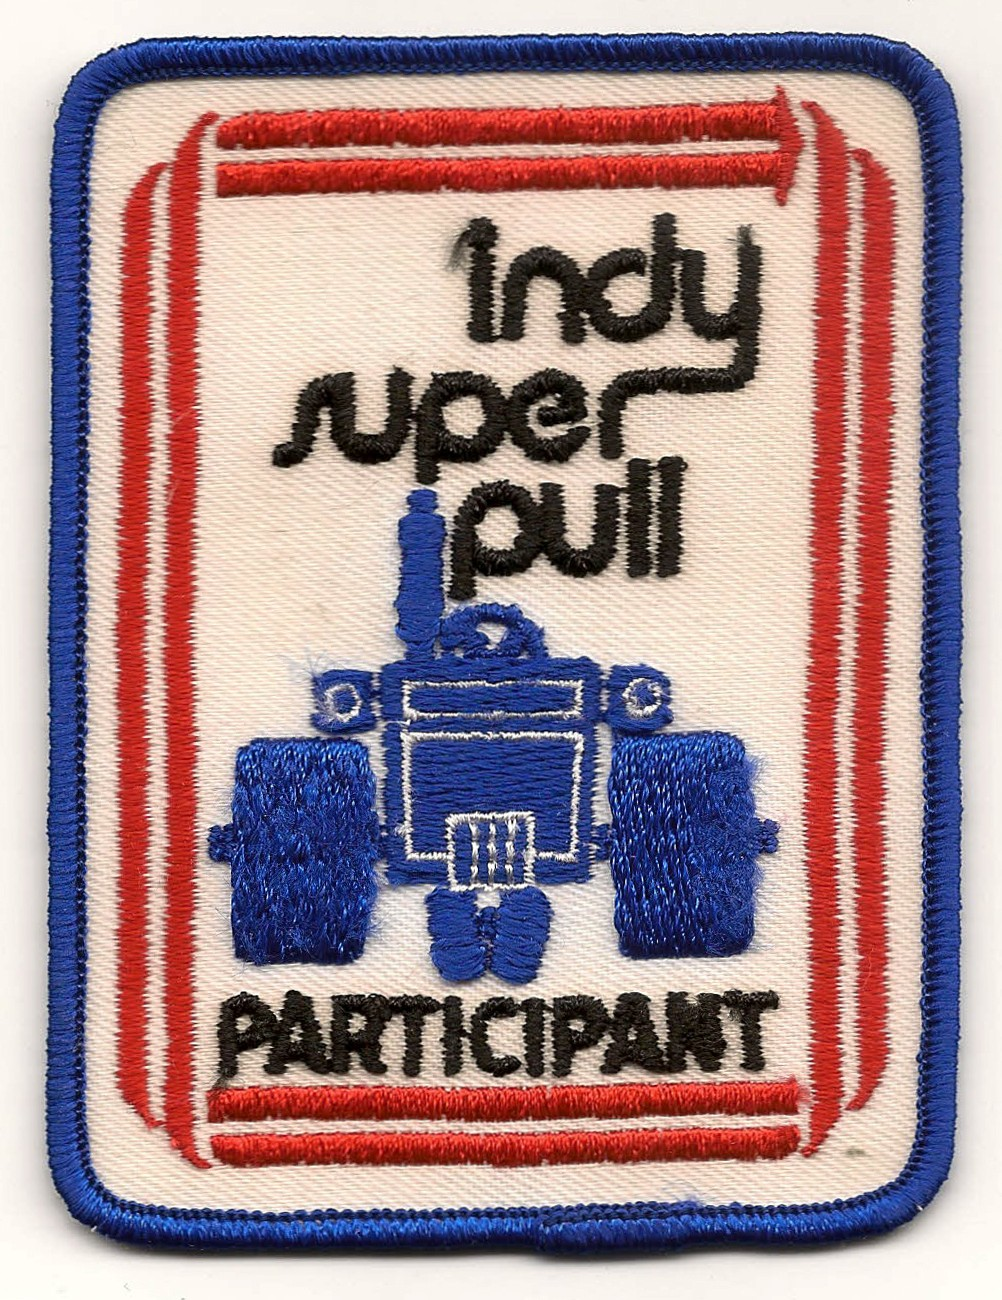 Indy Super Pull Participant Patch